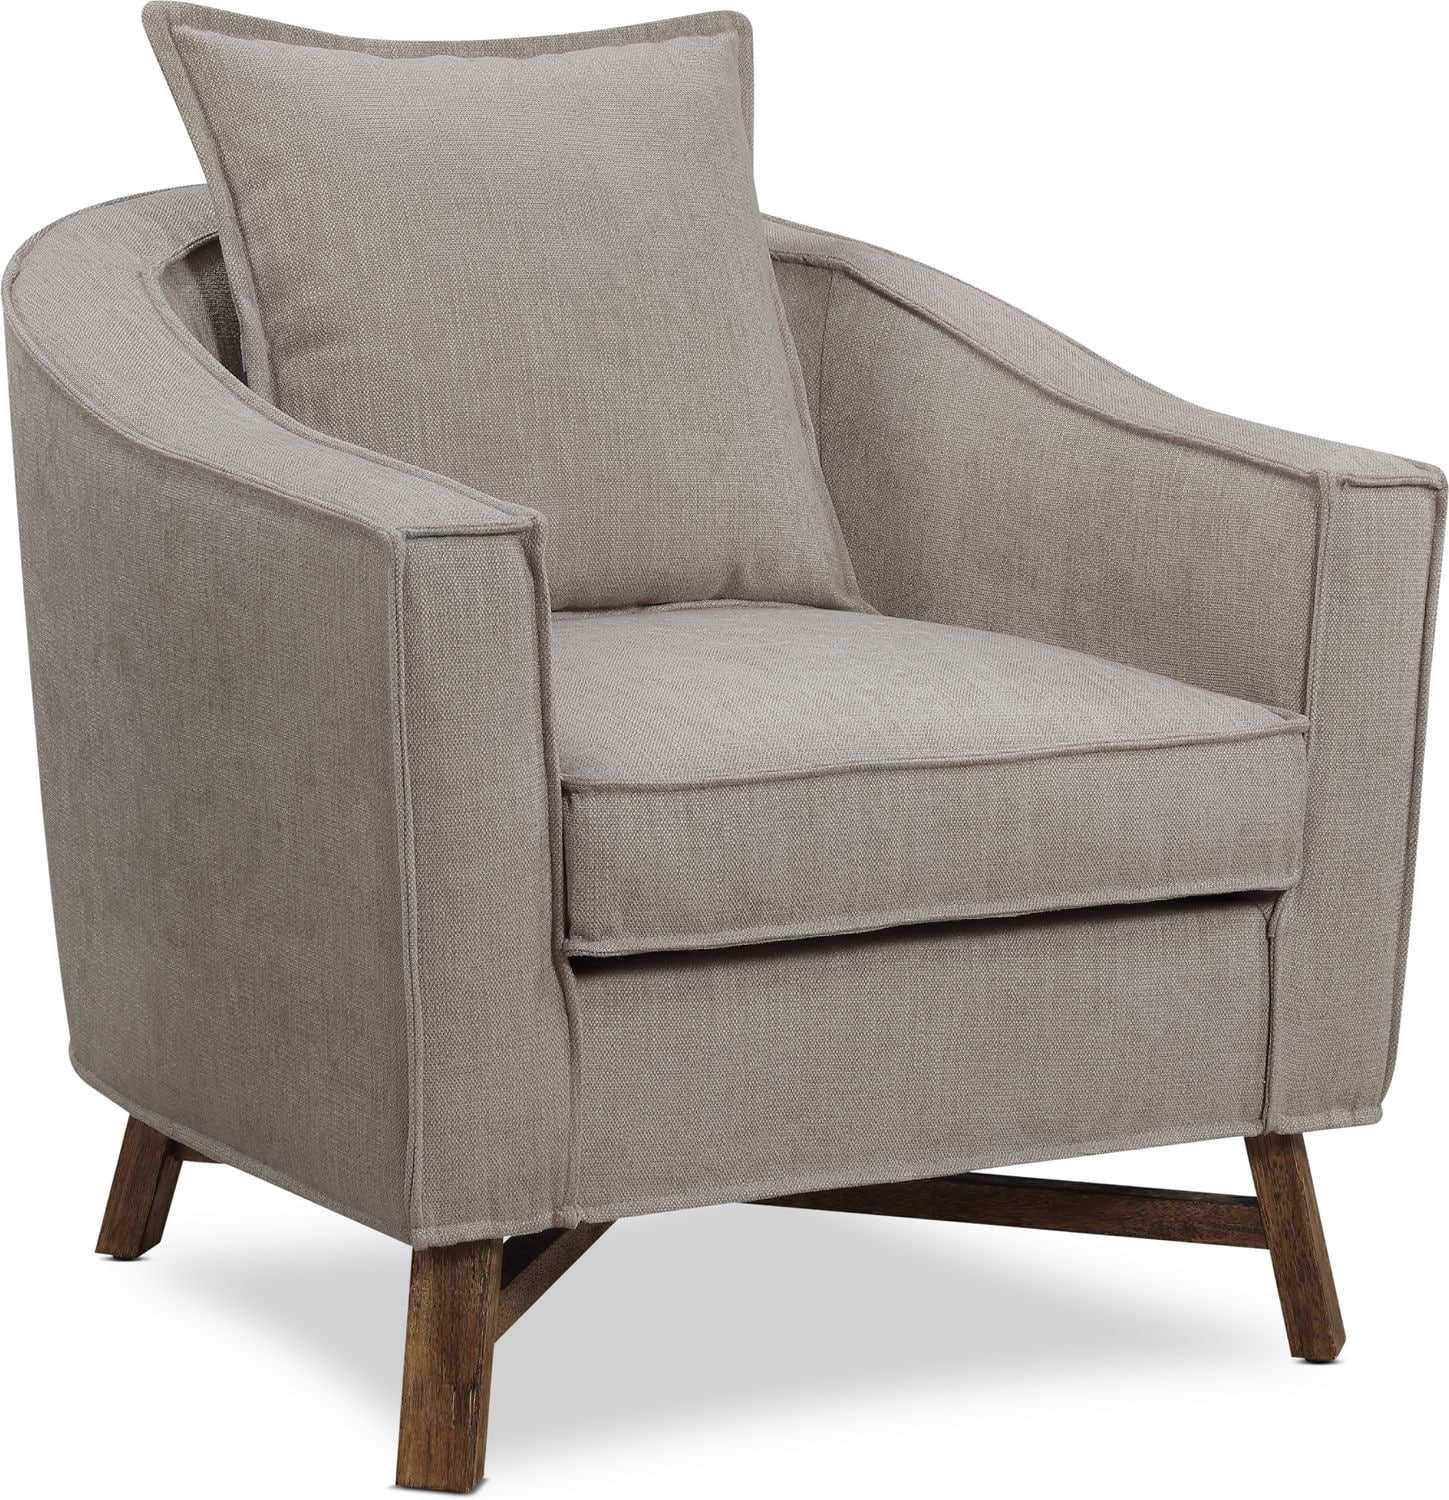 Living Room Furniture - Cohen Accent Chair